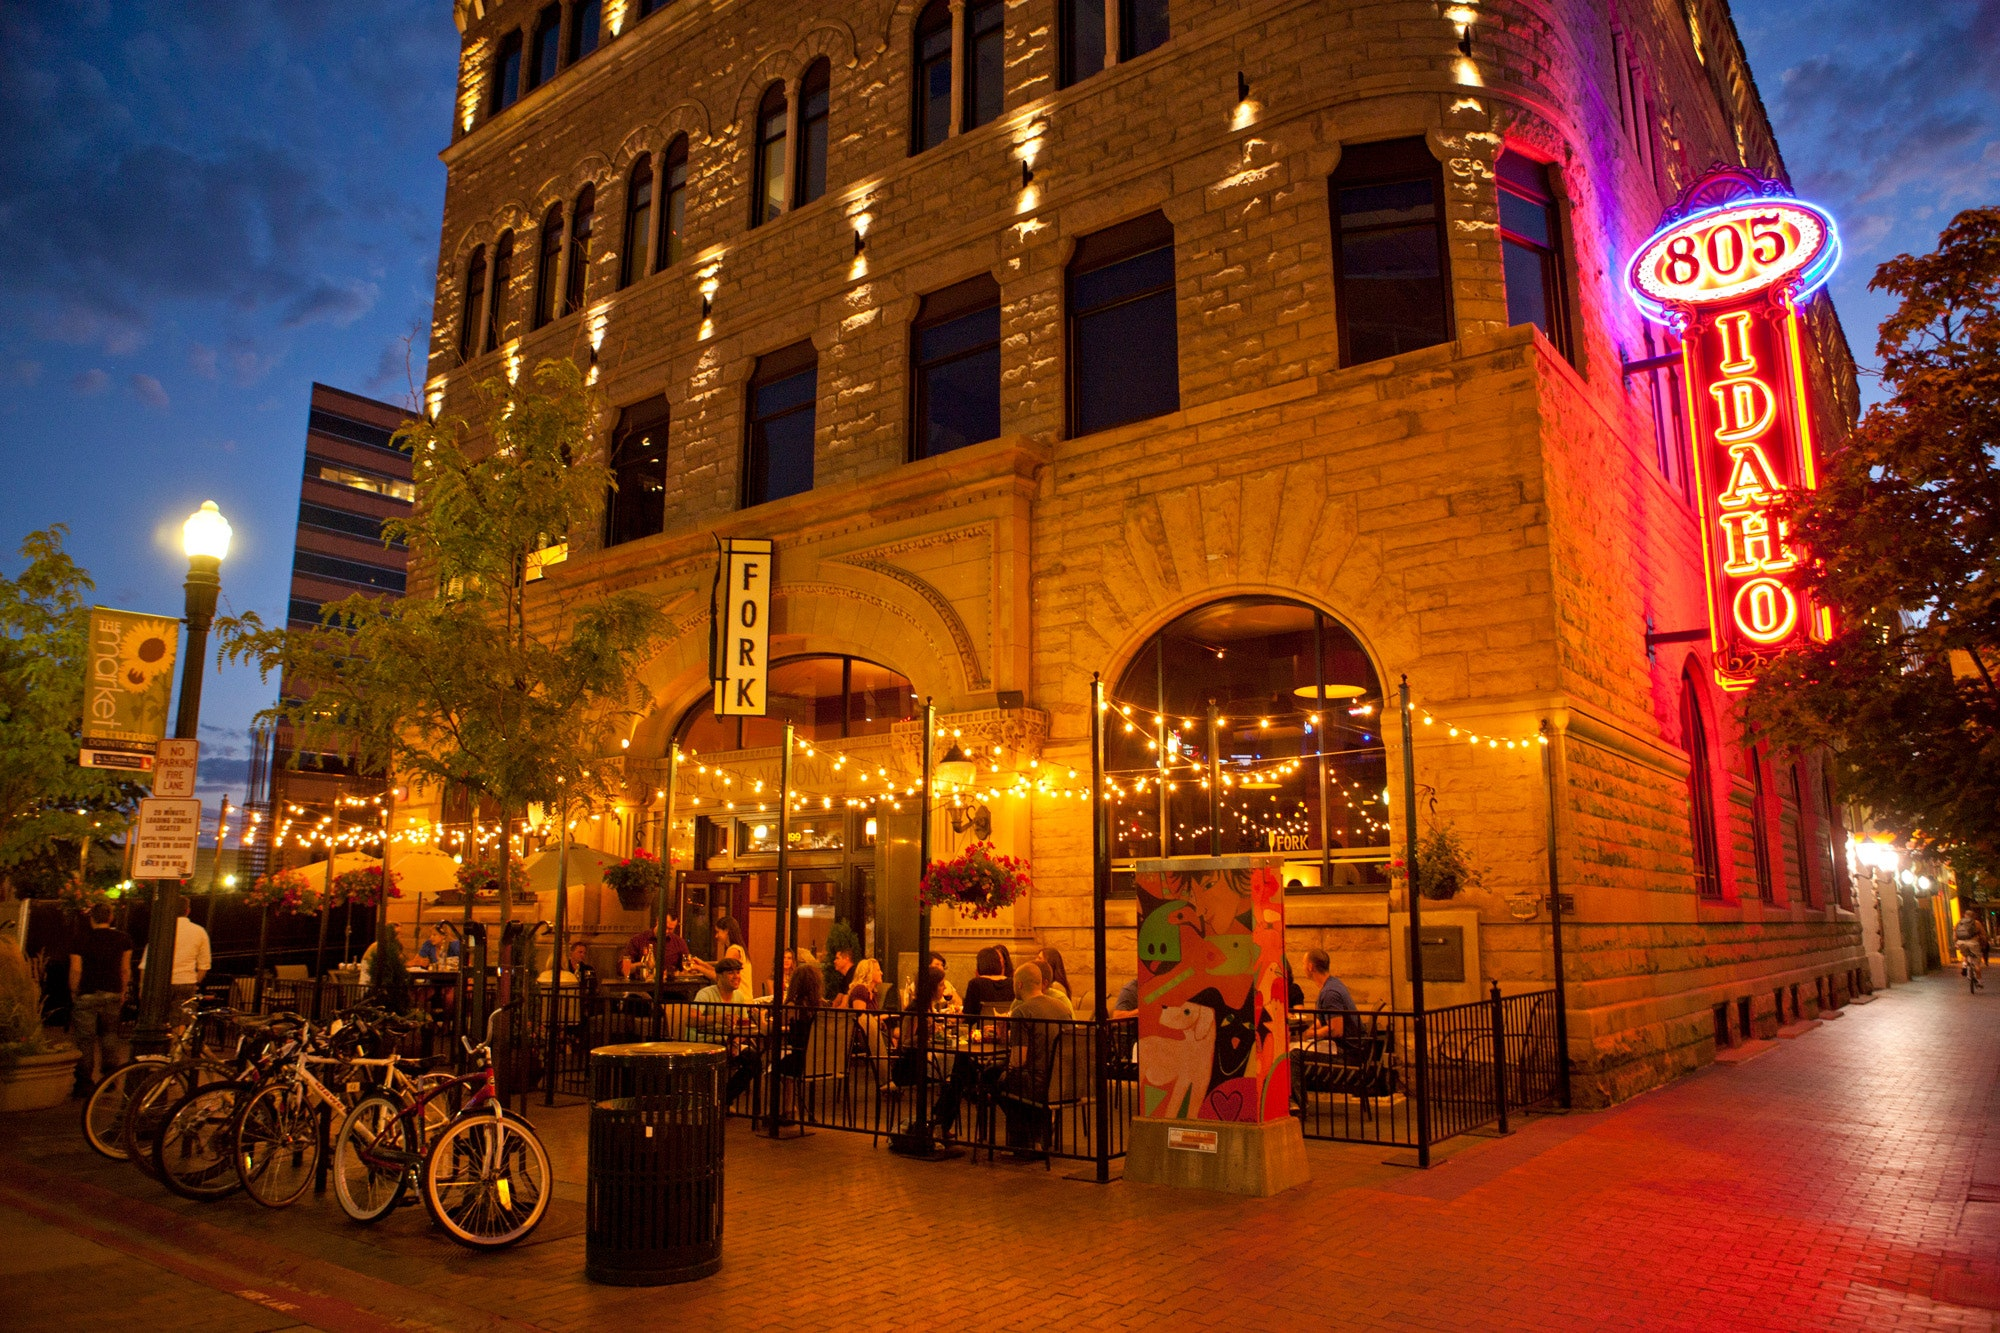 Downtown Boise is home to award-winning restaurants, wineries and craft breweries © Boise Convention & Visitors Bureau